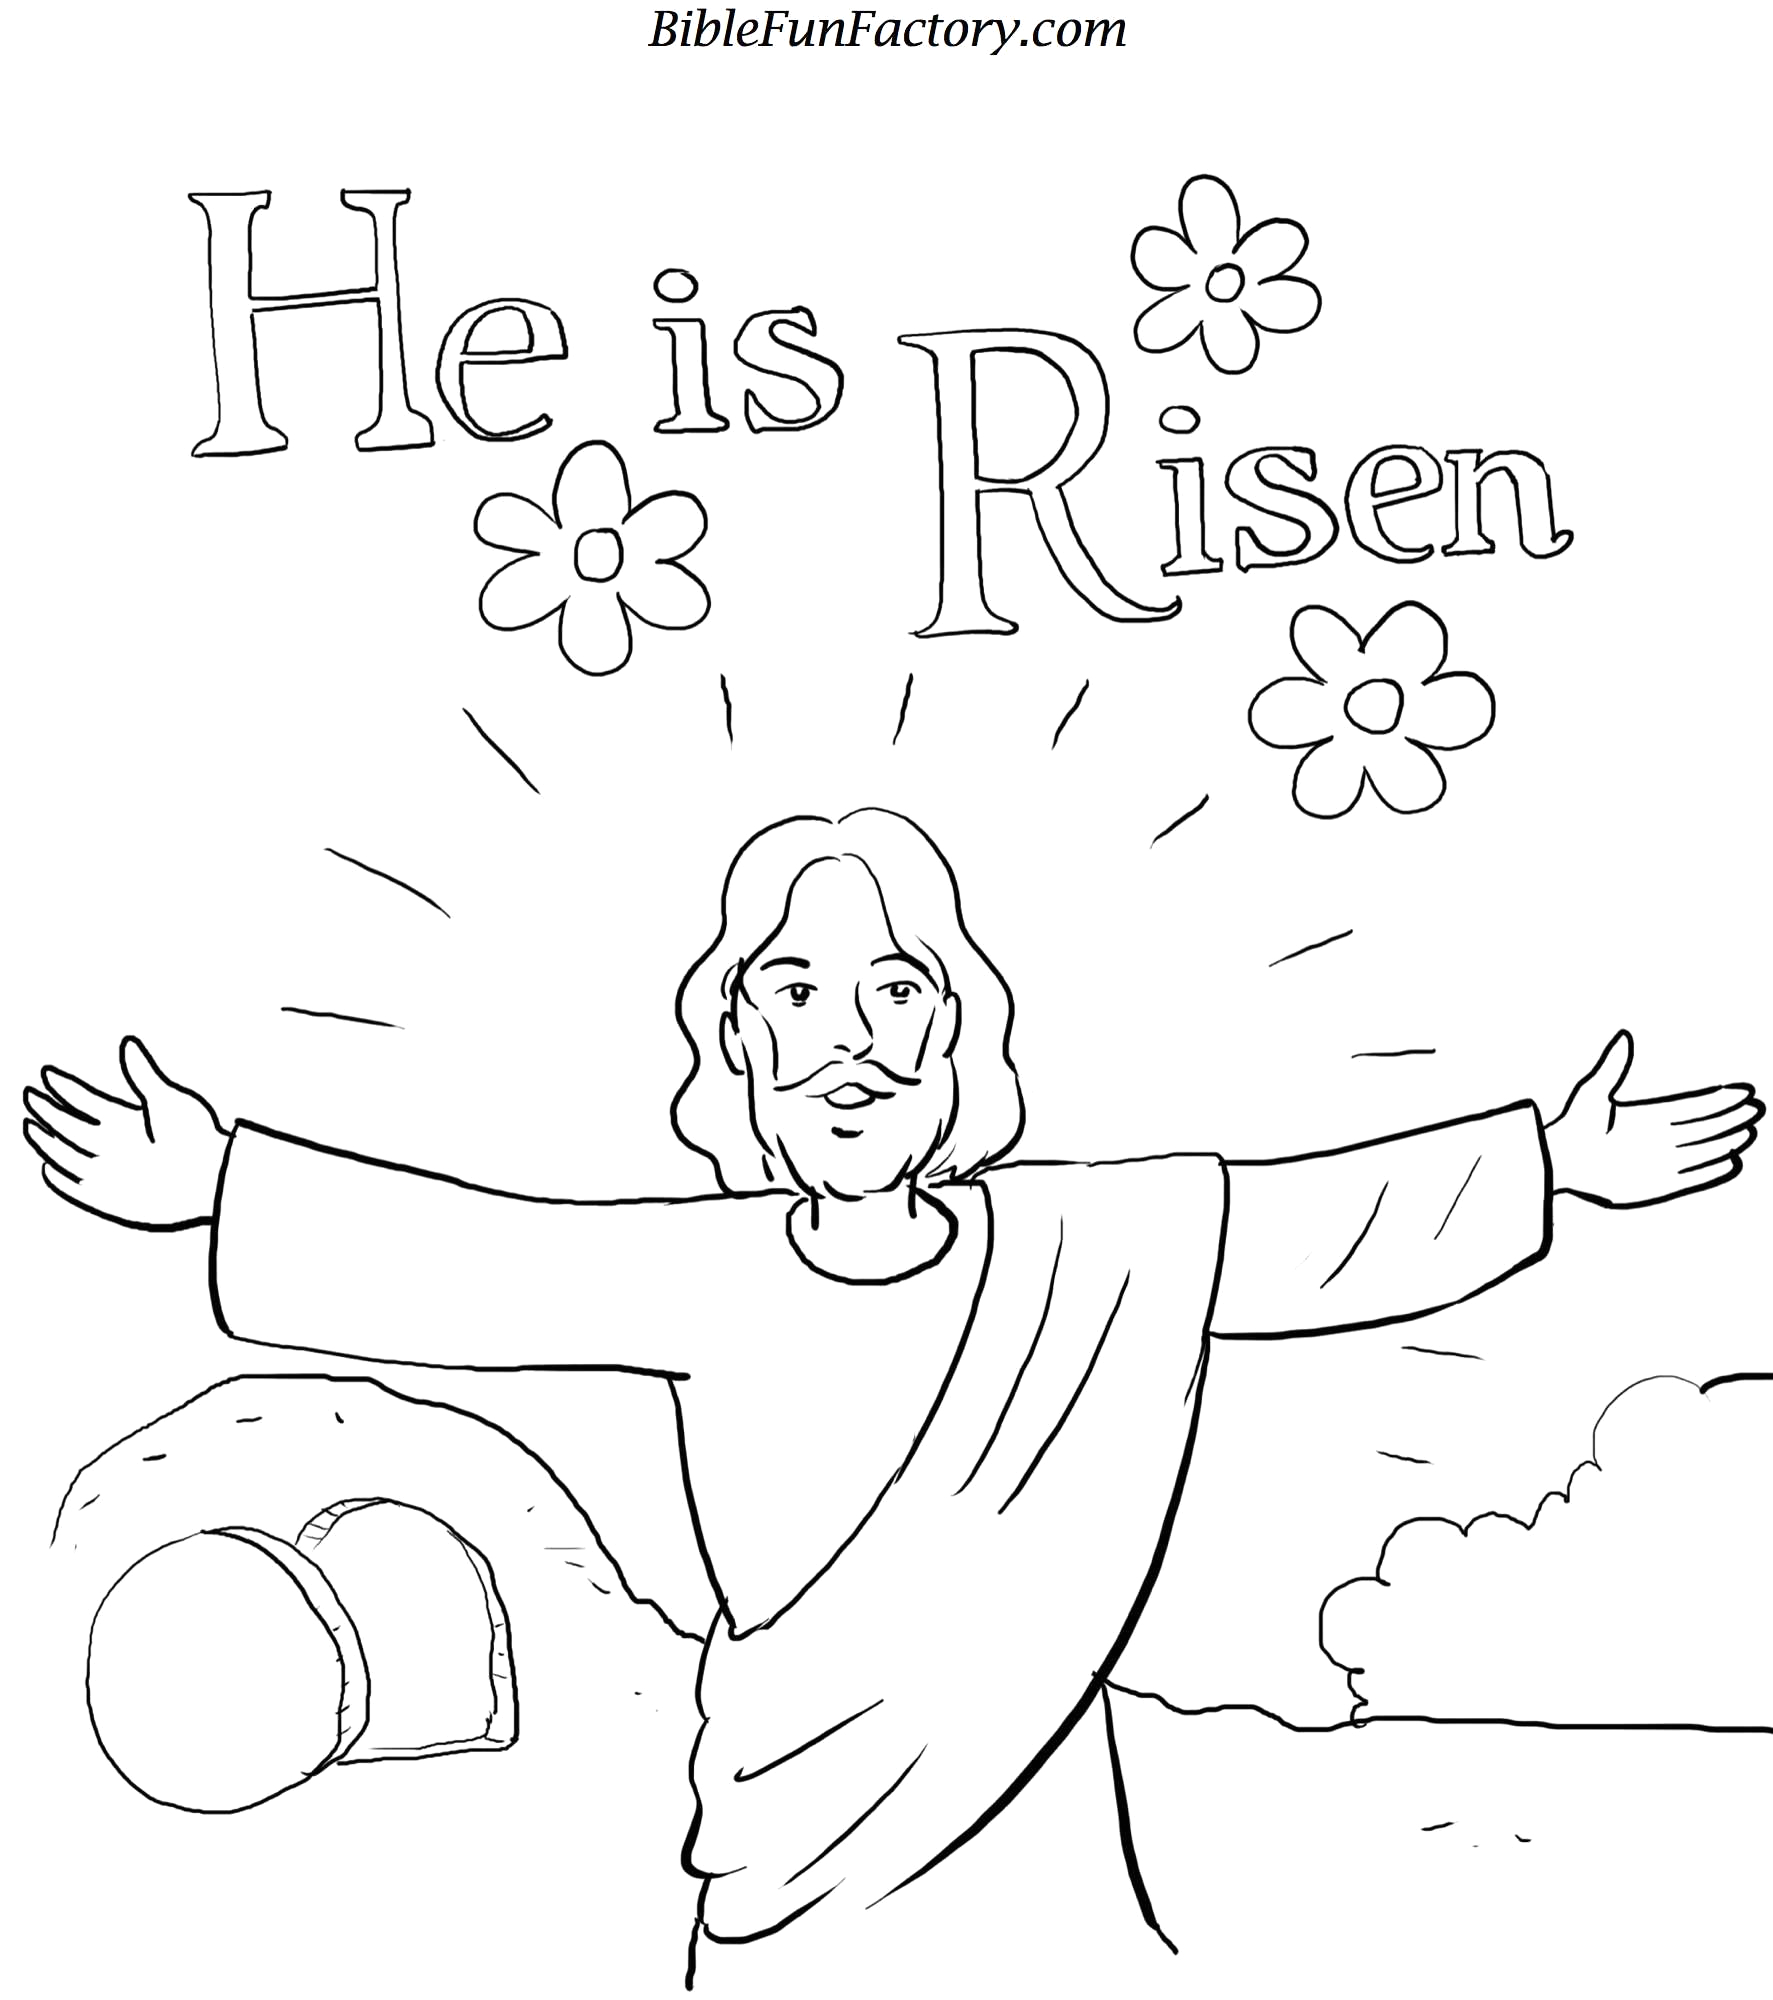 Printable Easter Coloring Pages for Sunday School Easter Coloring Sheet Bible Lessons Games and